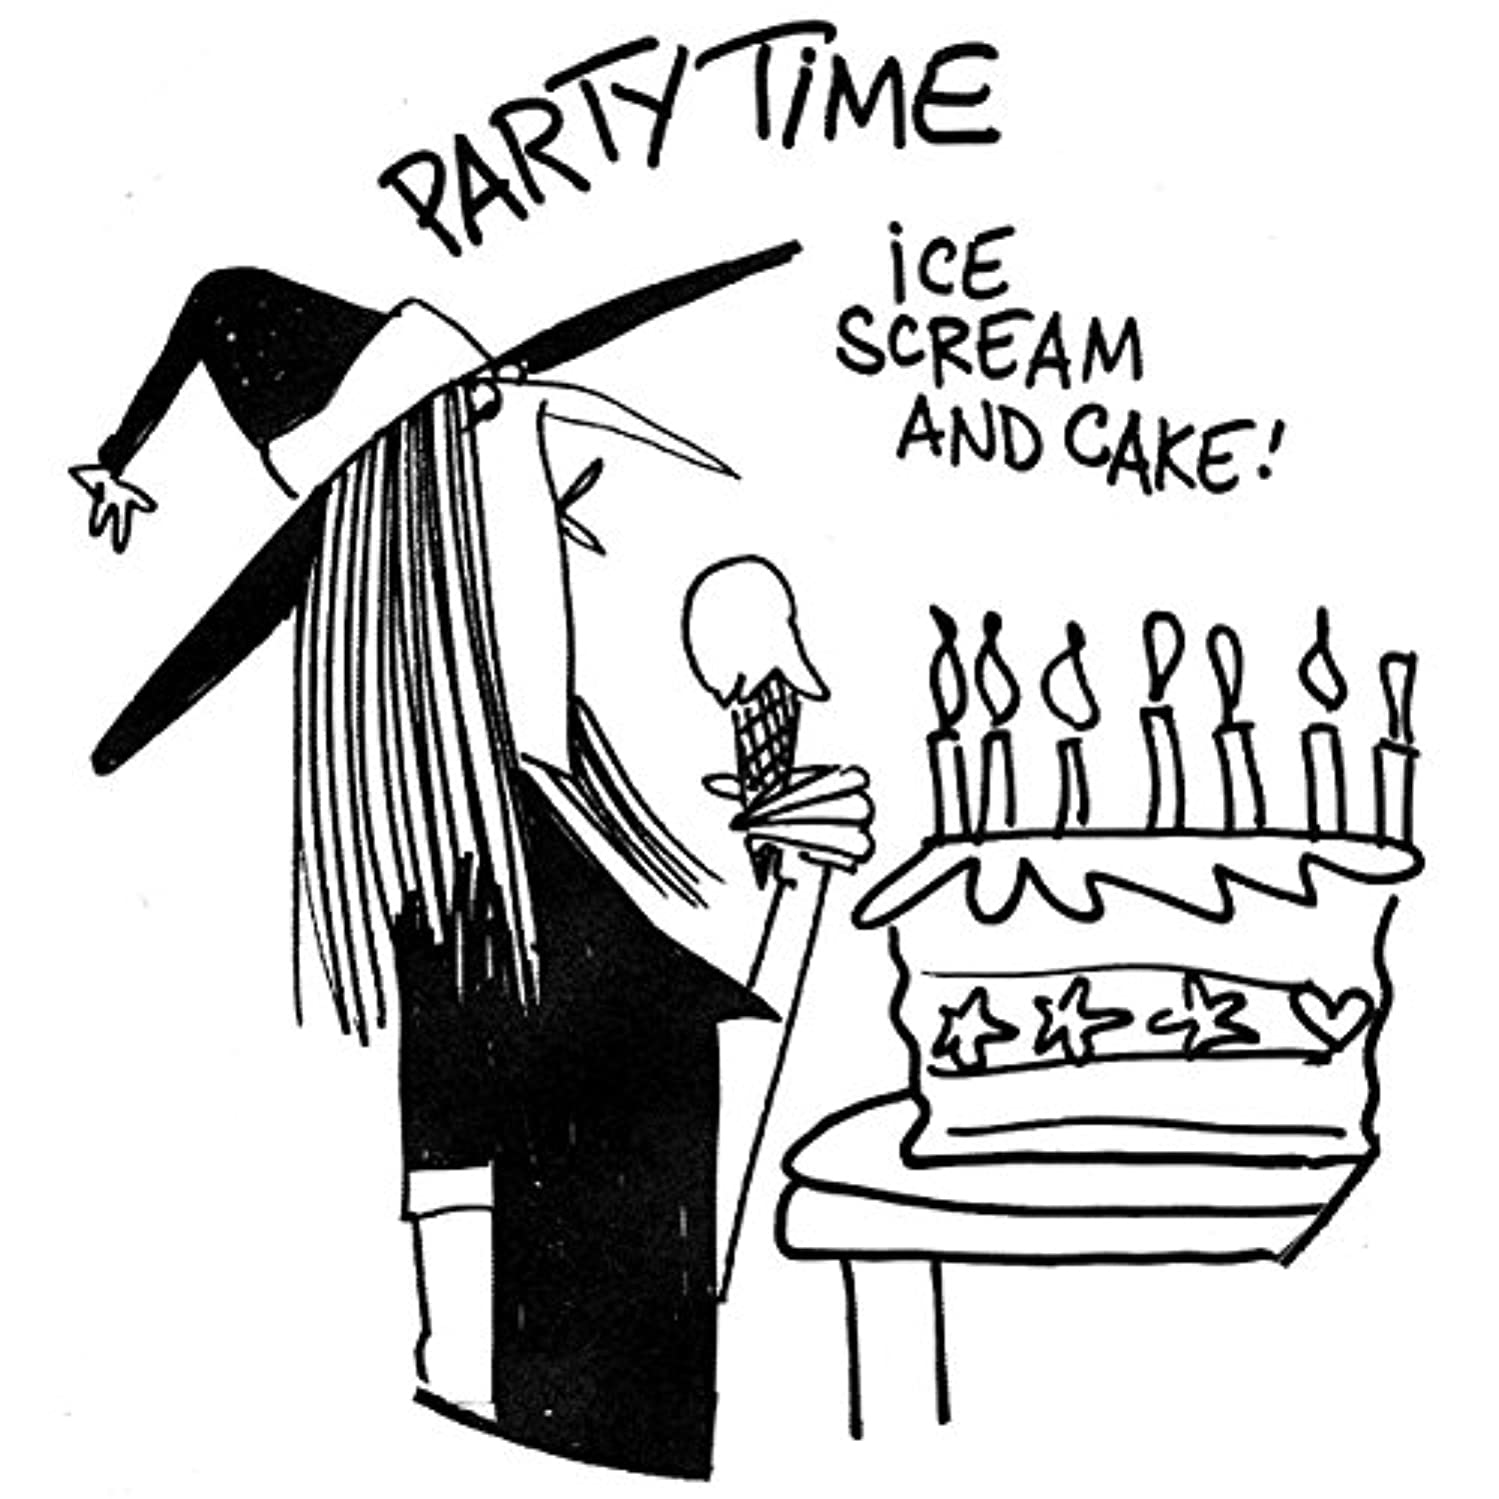 Gourmet Rubber Stamps EM7302 Cling Stamps 2.75 x 4.75 in. - Party Time, I Scream Cake